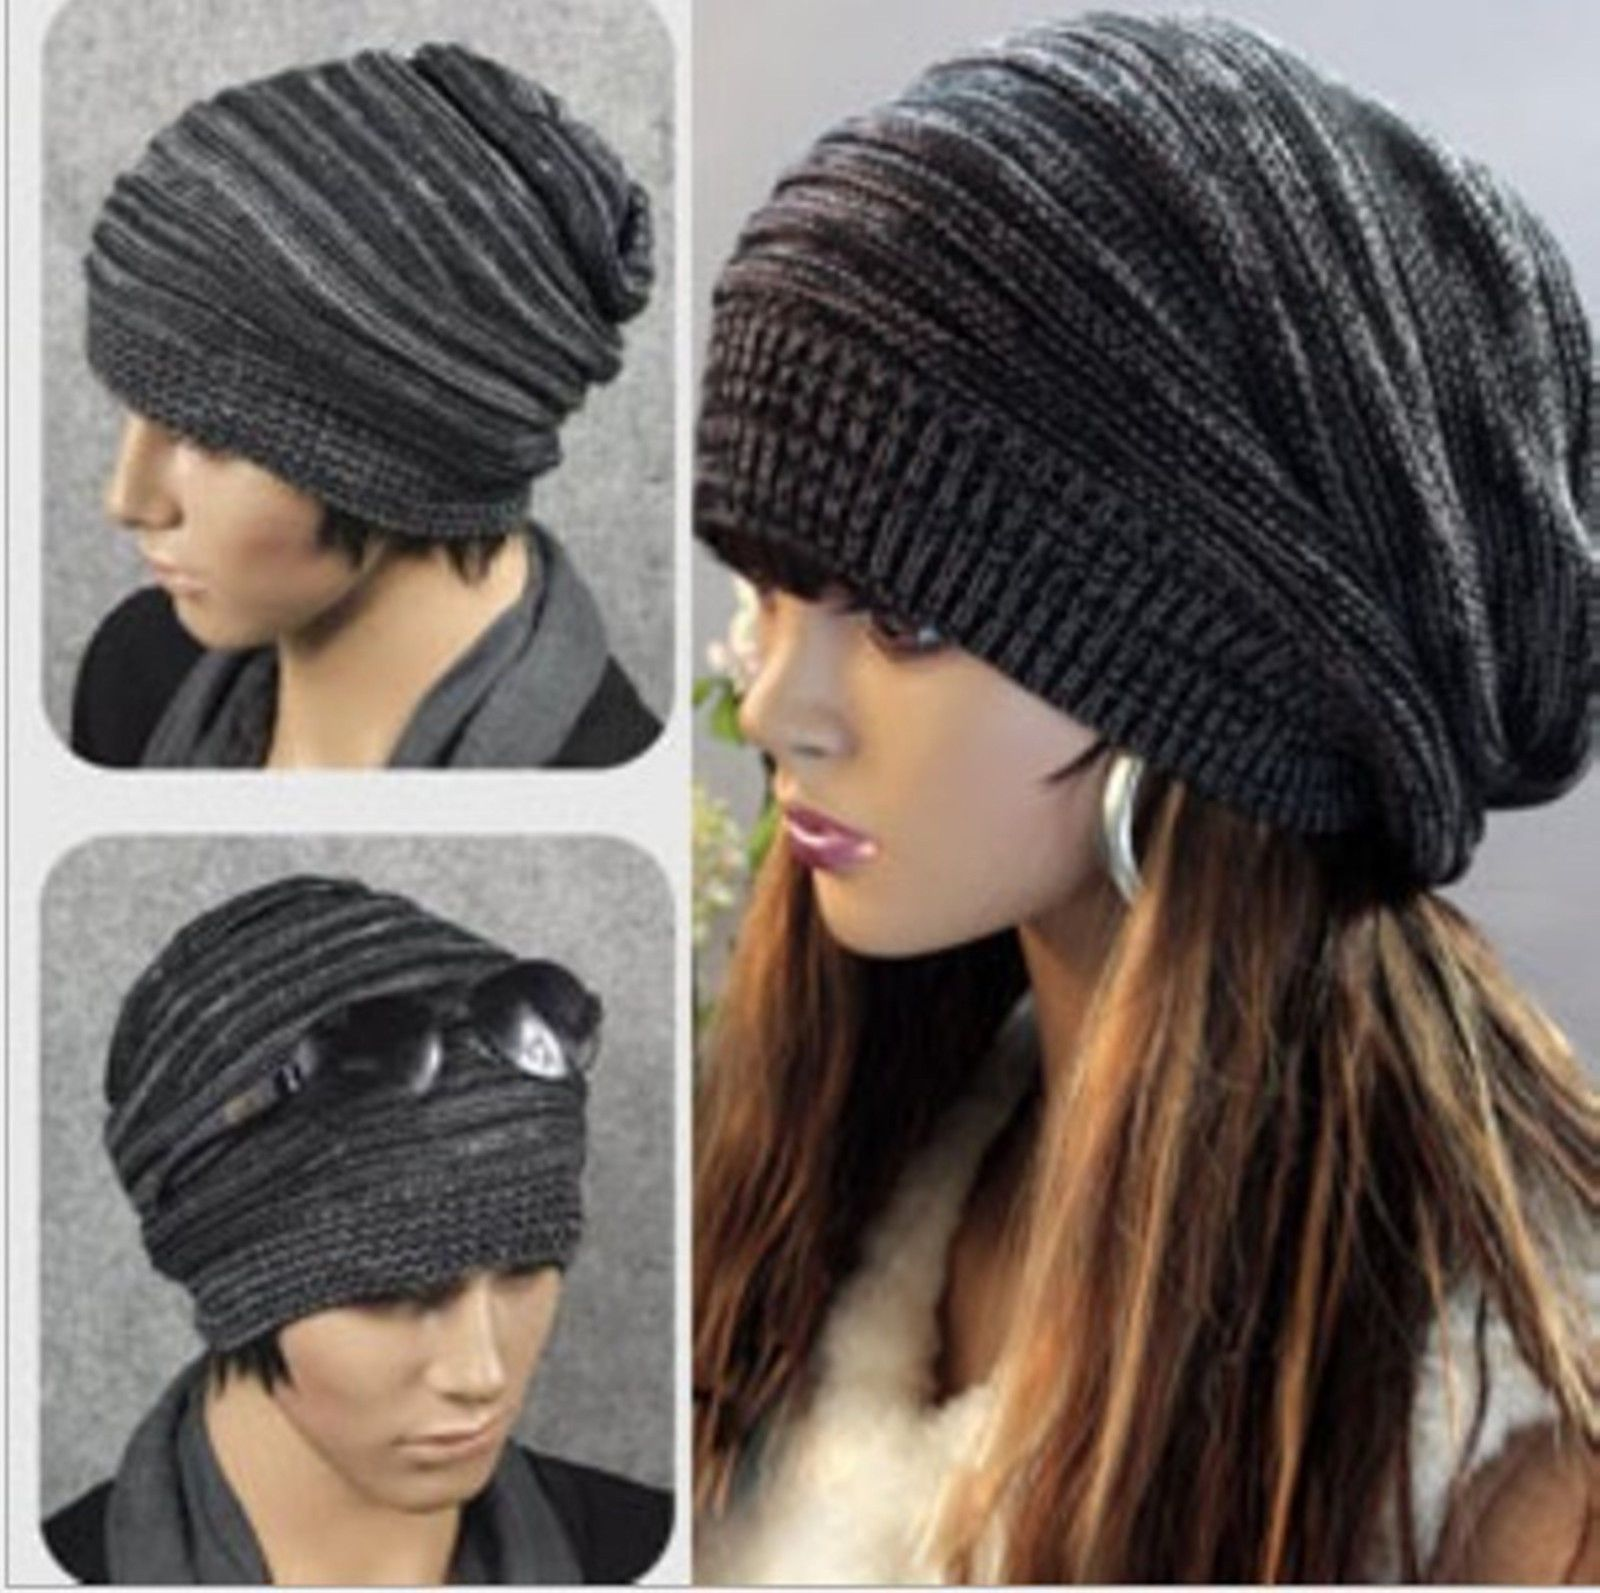 2a8402fc5b5 New Unisex Womens Mens Knit Baggy Beanie Hat Winter Warm Oversized Ski Cap